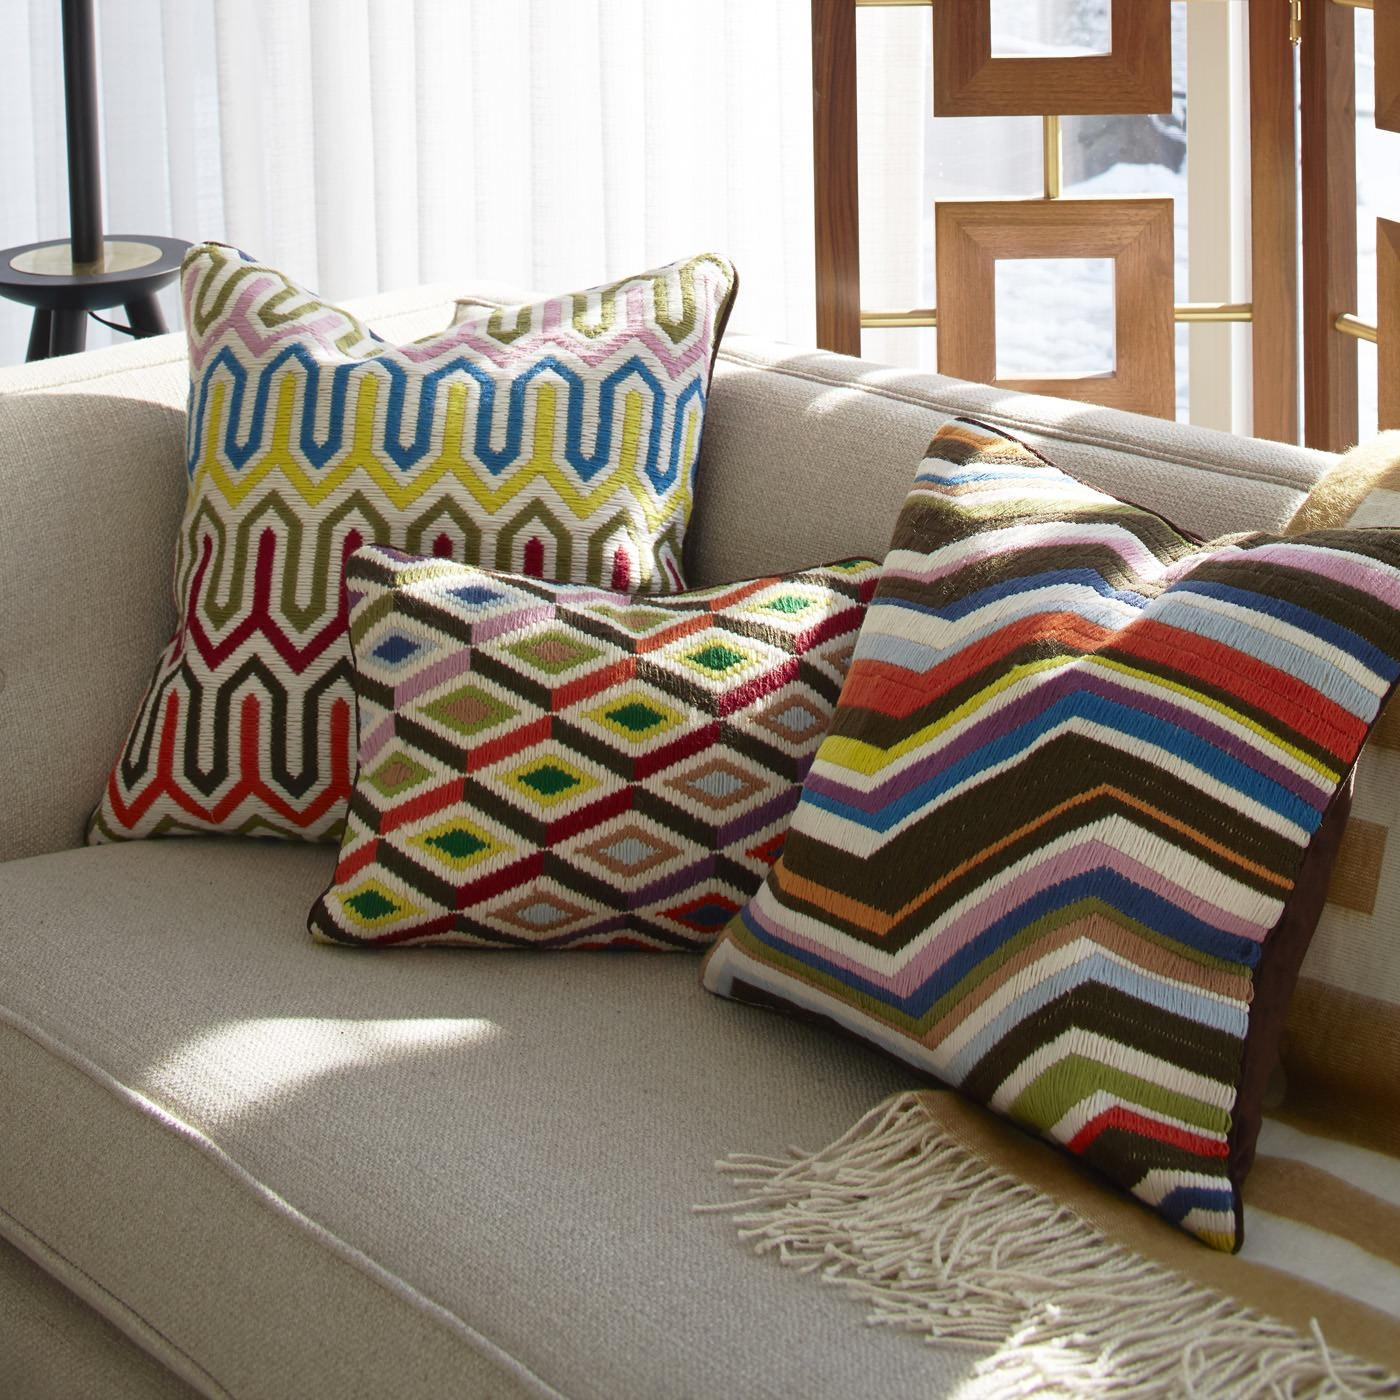 Sofas Center : Sofa Throw Pillows Wonderful Pictures Inspirations With Regard To Oversized Sofa Pillows (View 3 of 20)